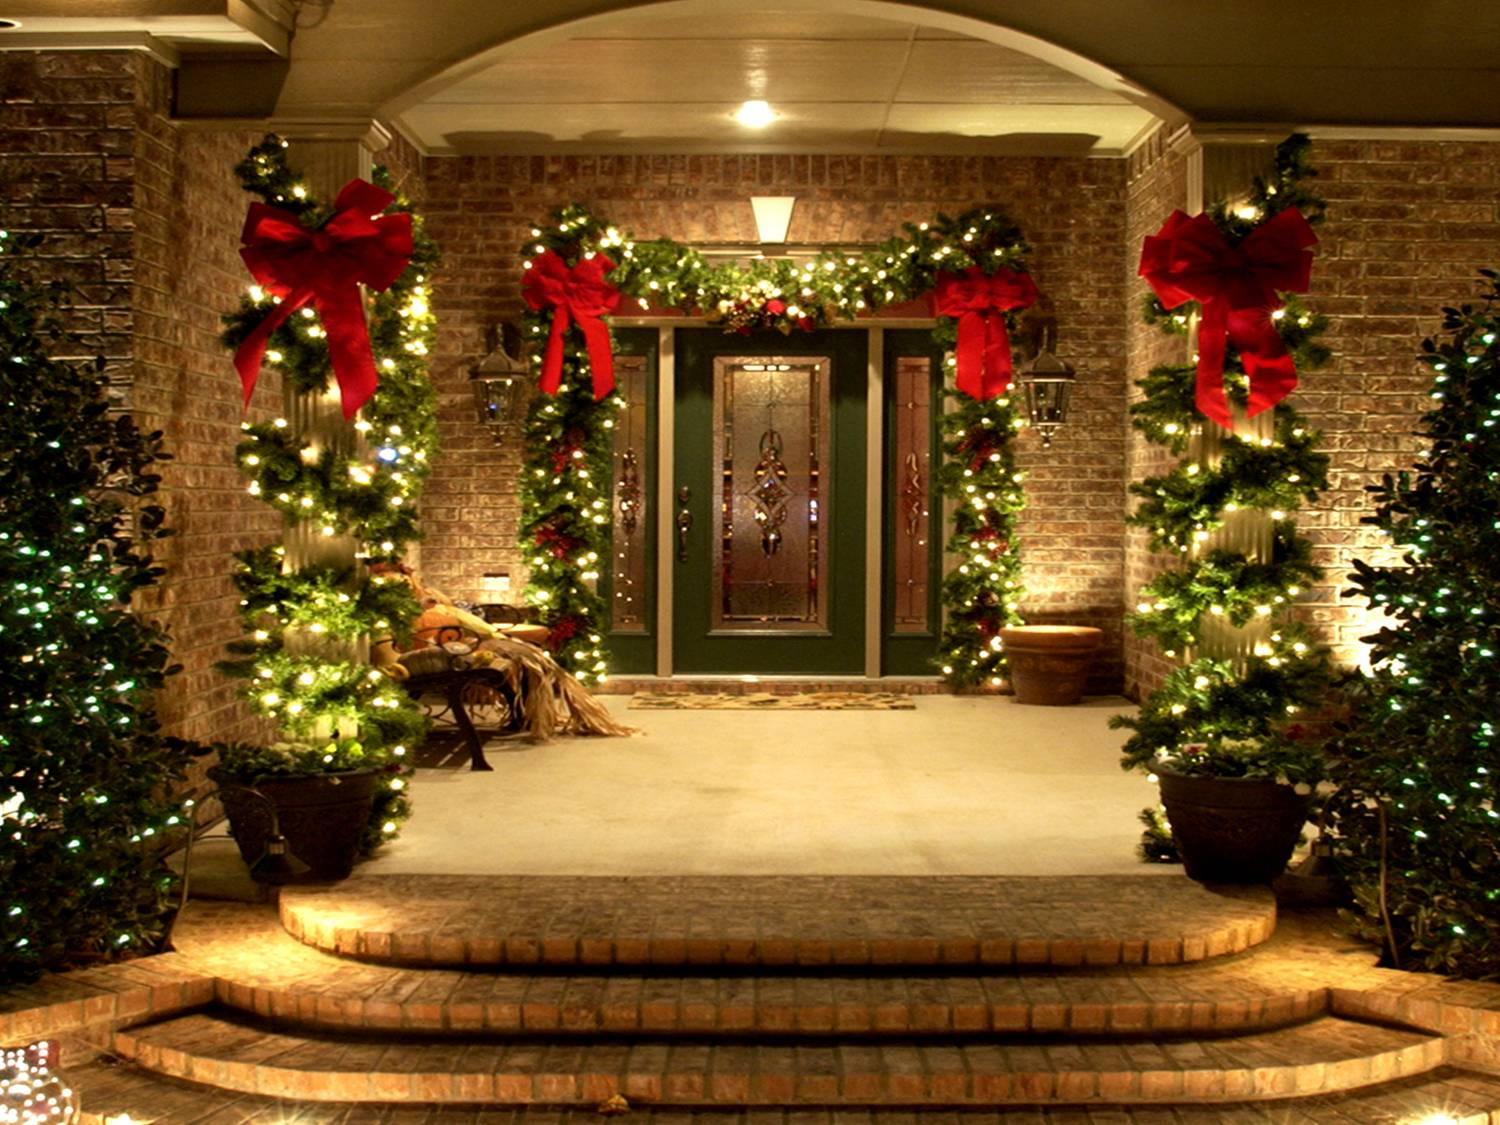 Permalink to Colorado Homes and Commercial Properties Become Destinations with Christmas Lighting and Du00e9cor